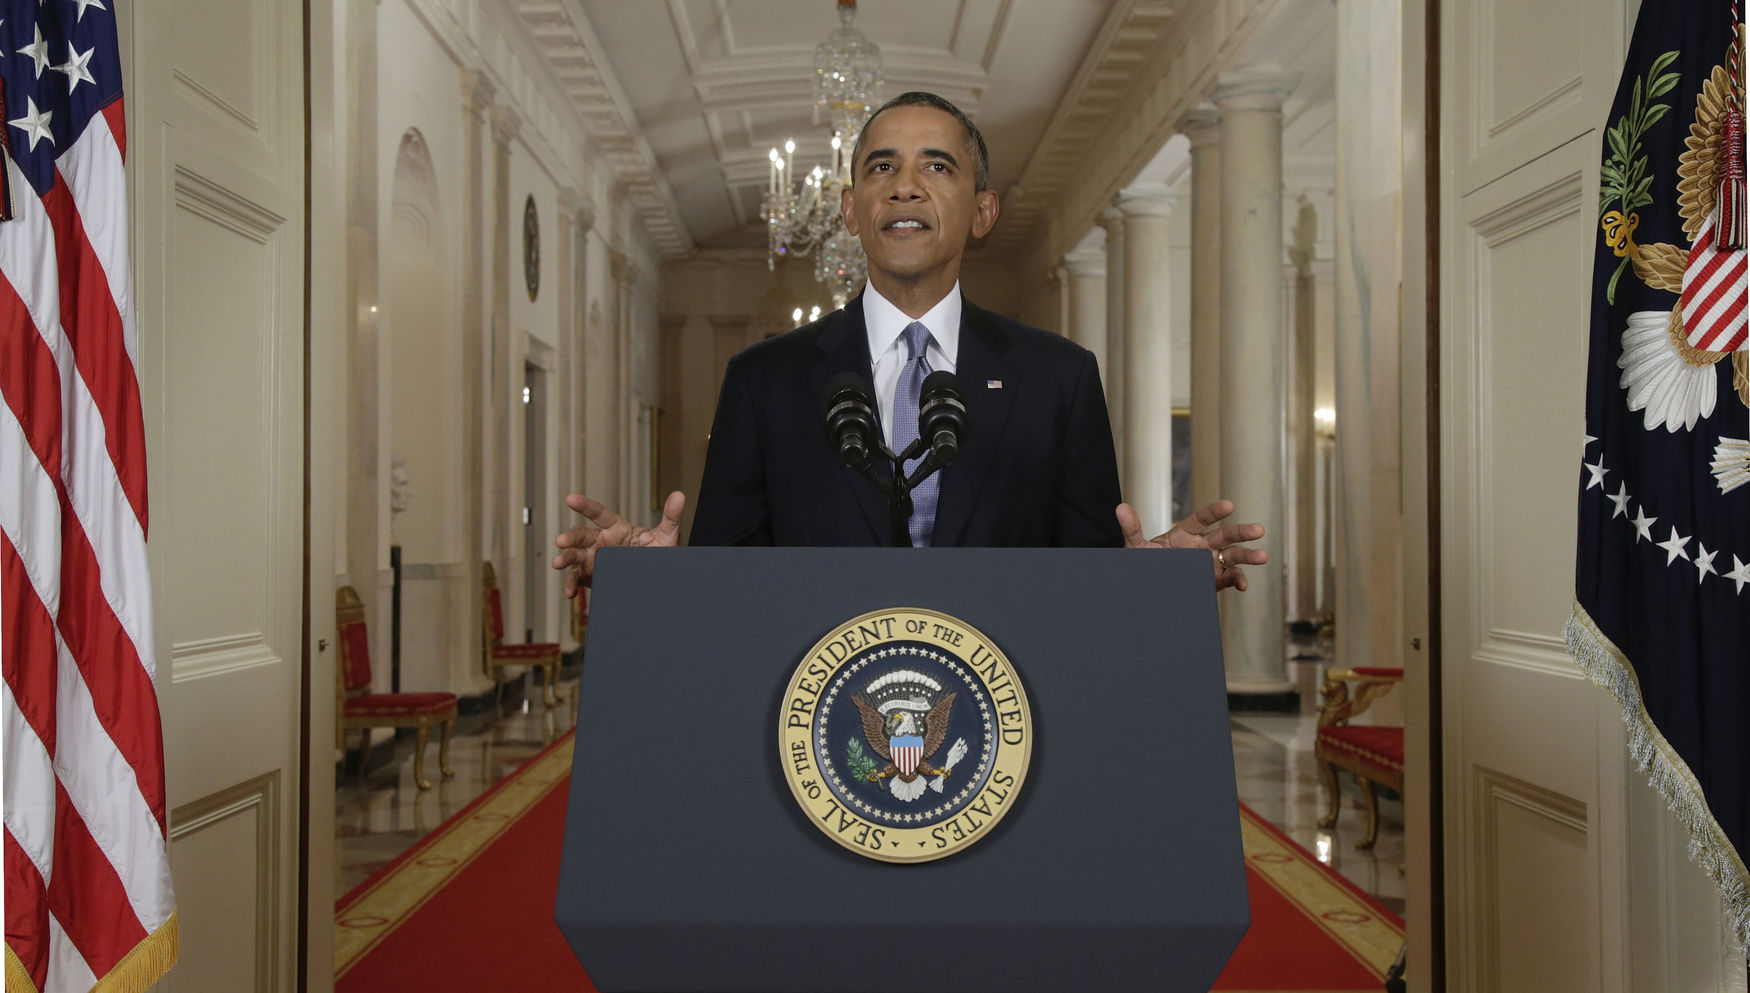 Barack Obama addresses nation